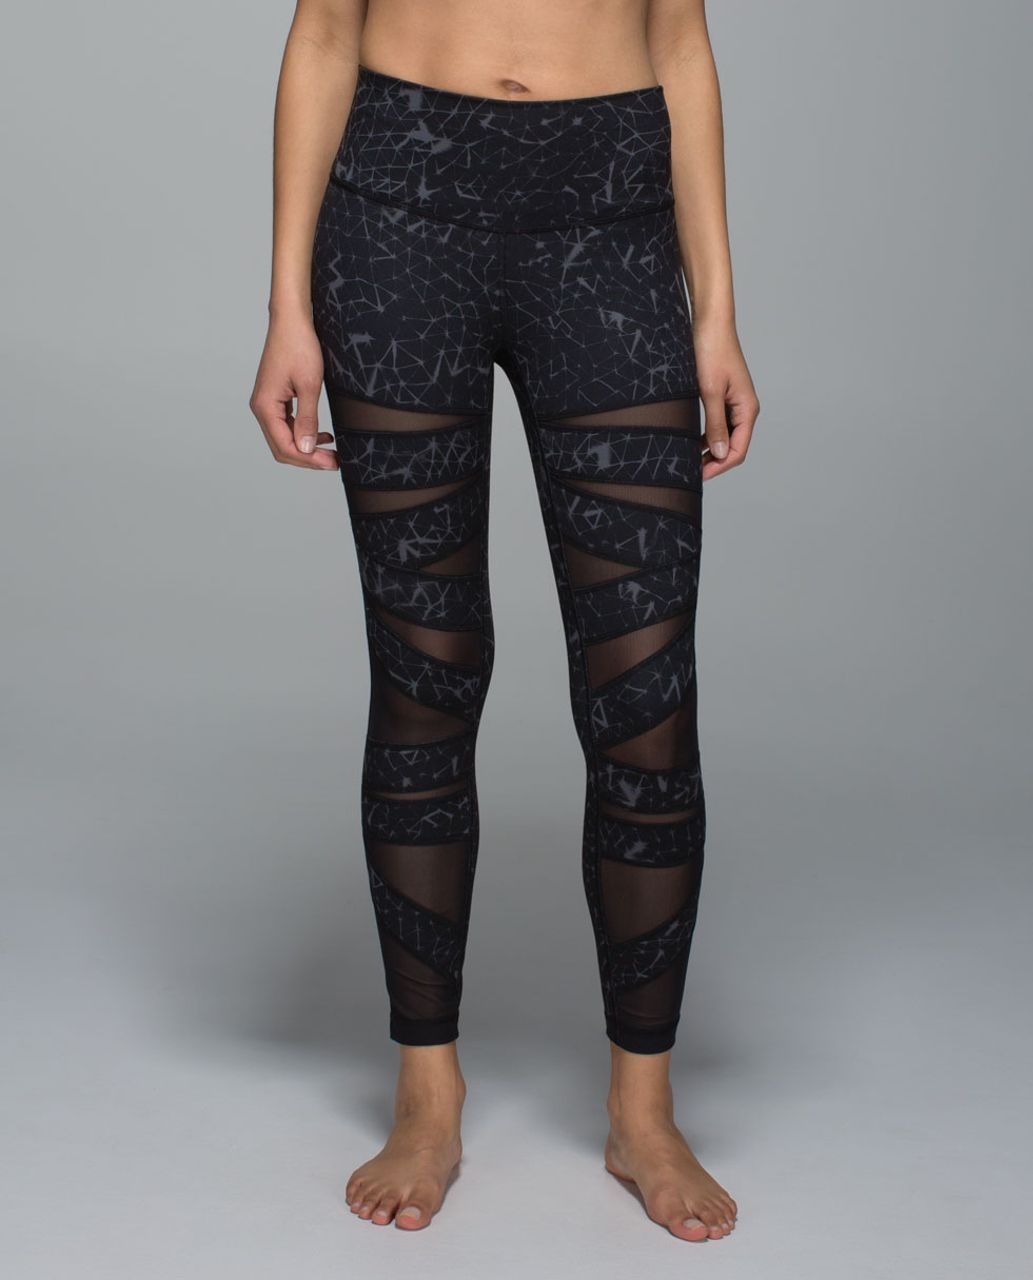 489975456323ee Lululemon High Times Pant *Full-On Luon (Mesh) - Star Crushed Coal Black /  Black - lulu fanatics